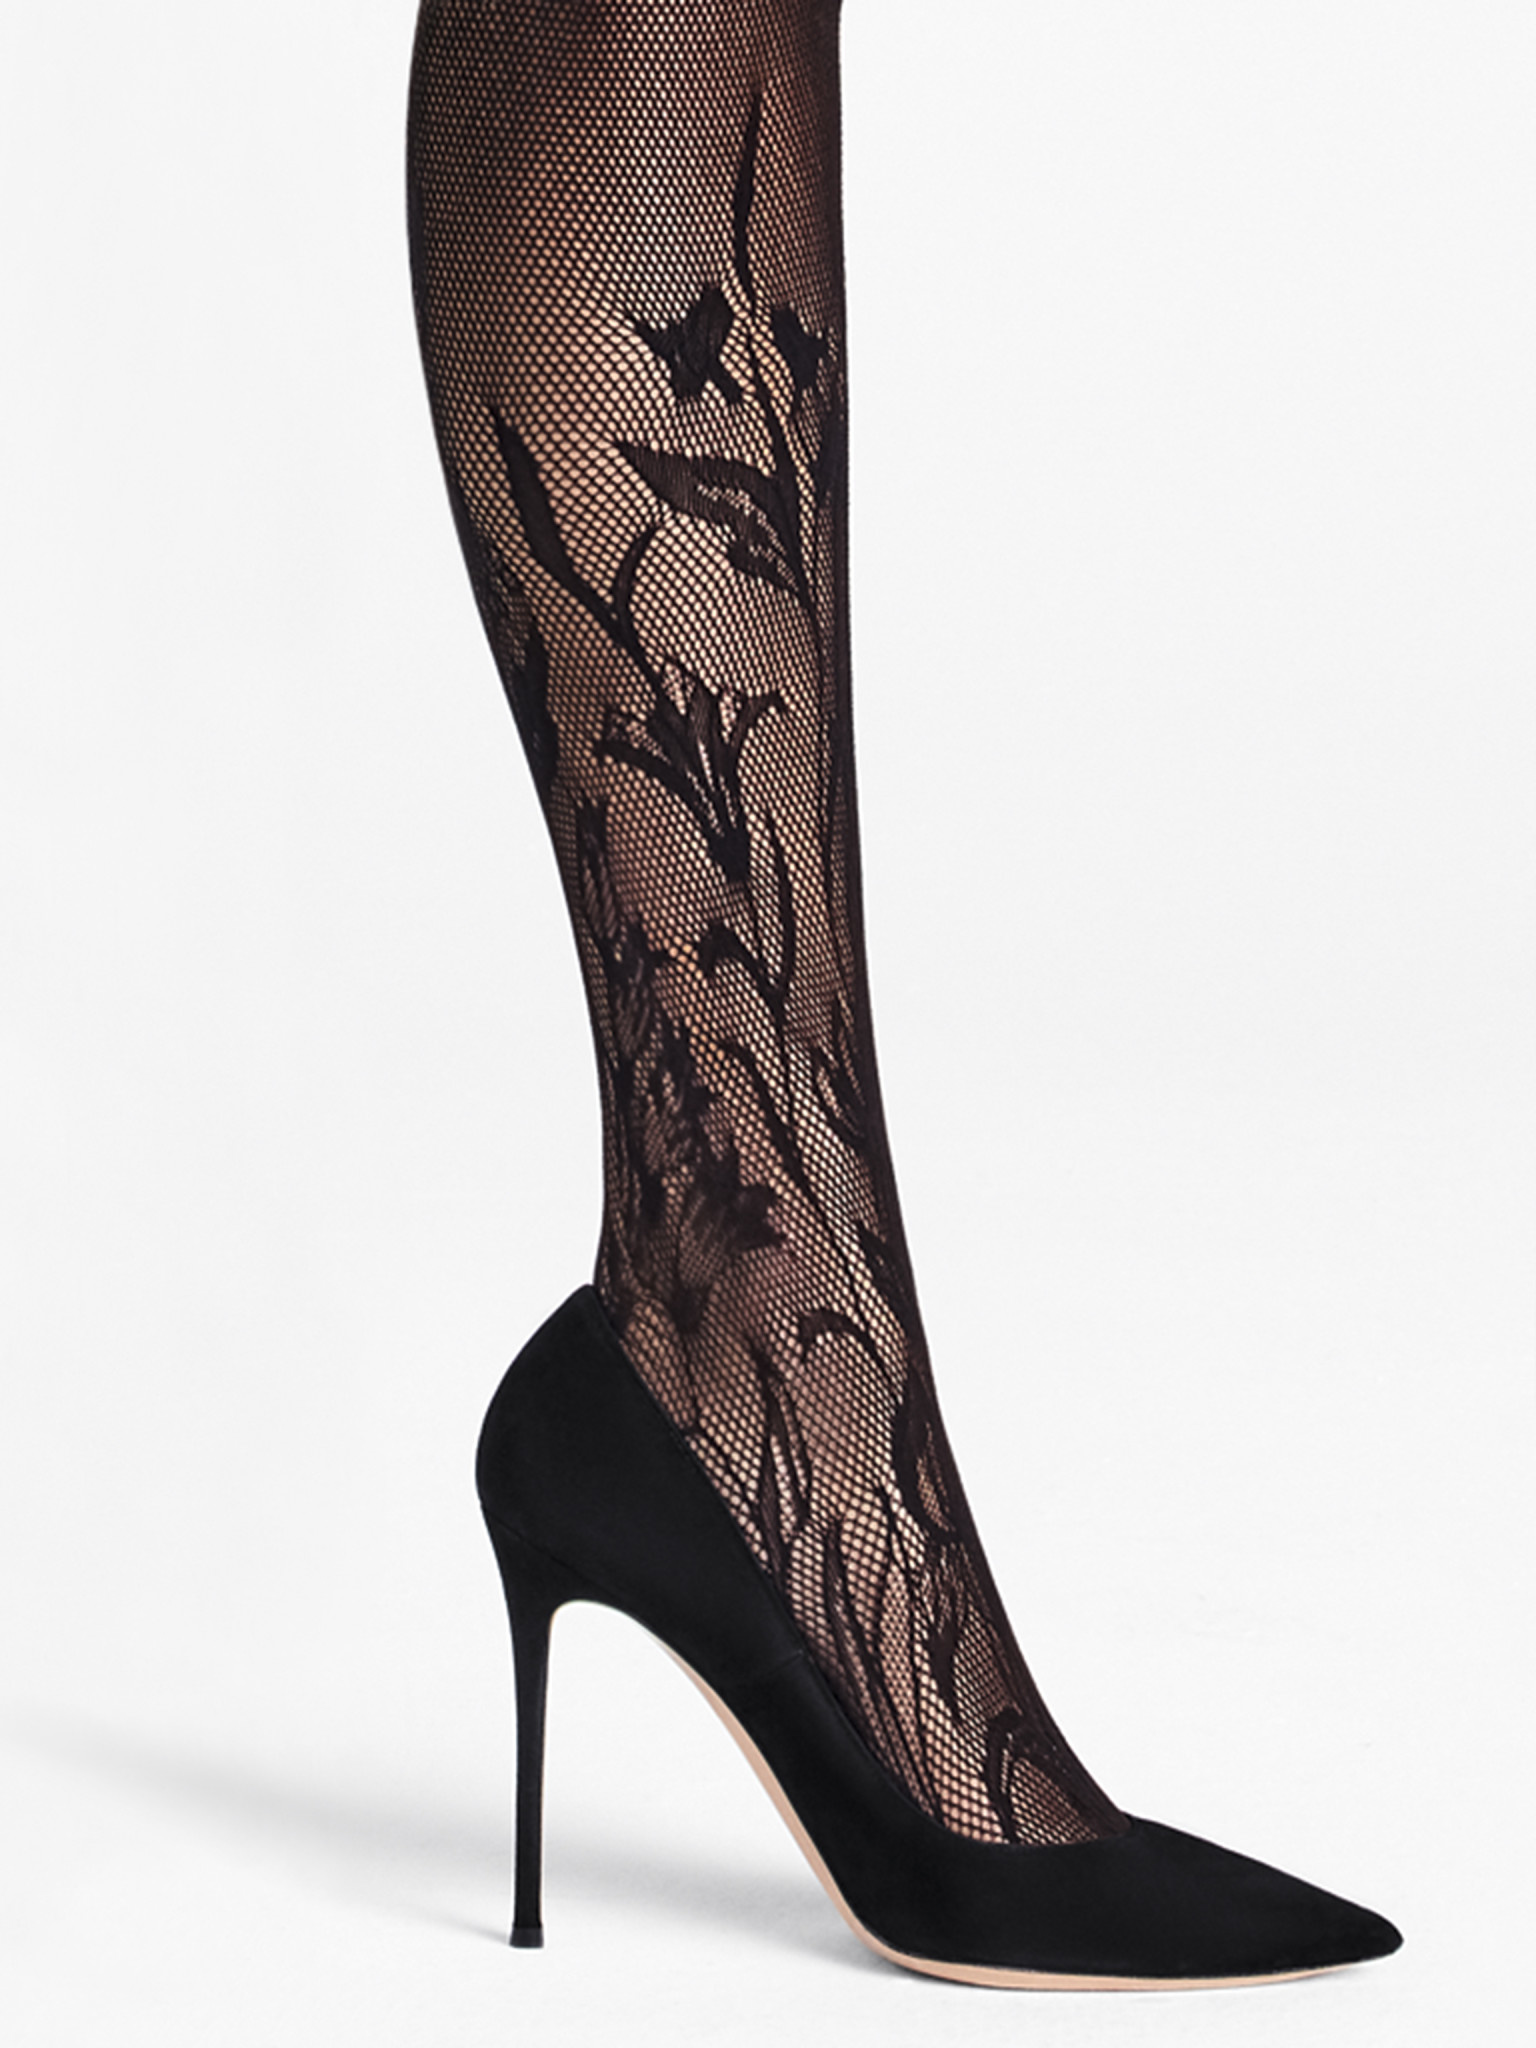 WOLFORD 19236 Wildflower Net Tights